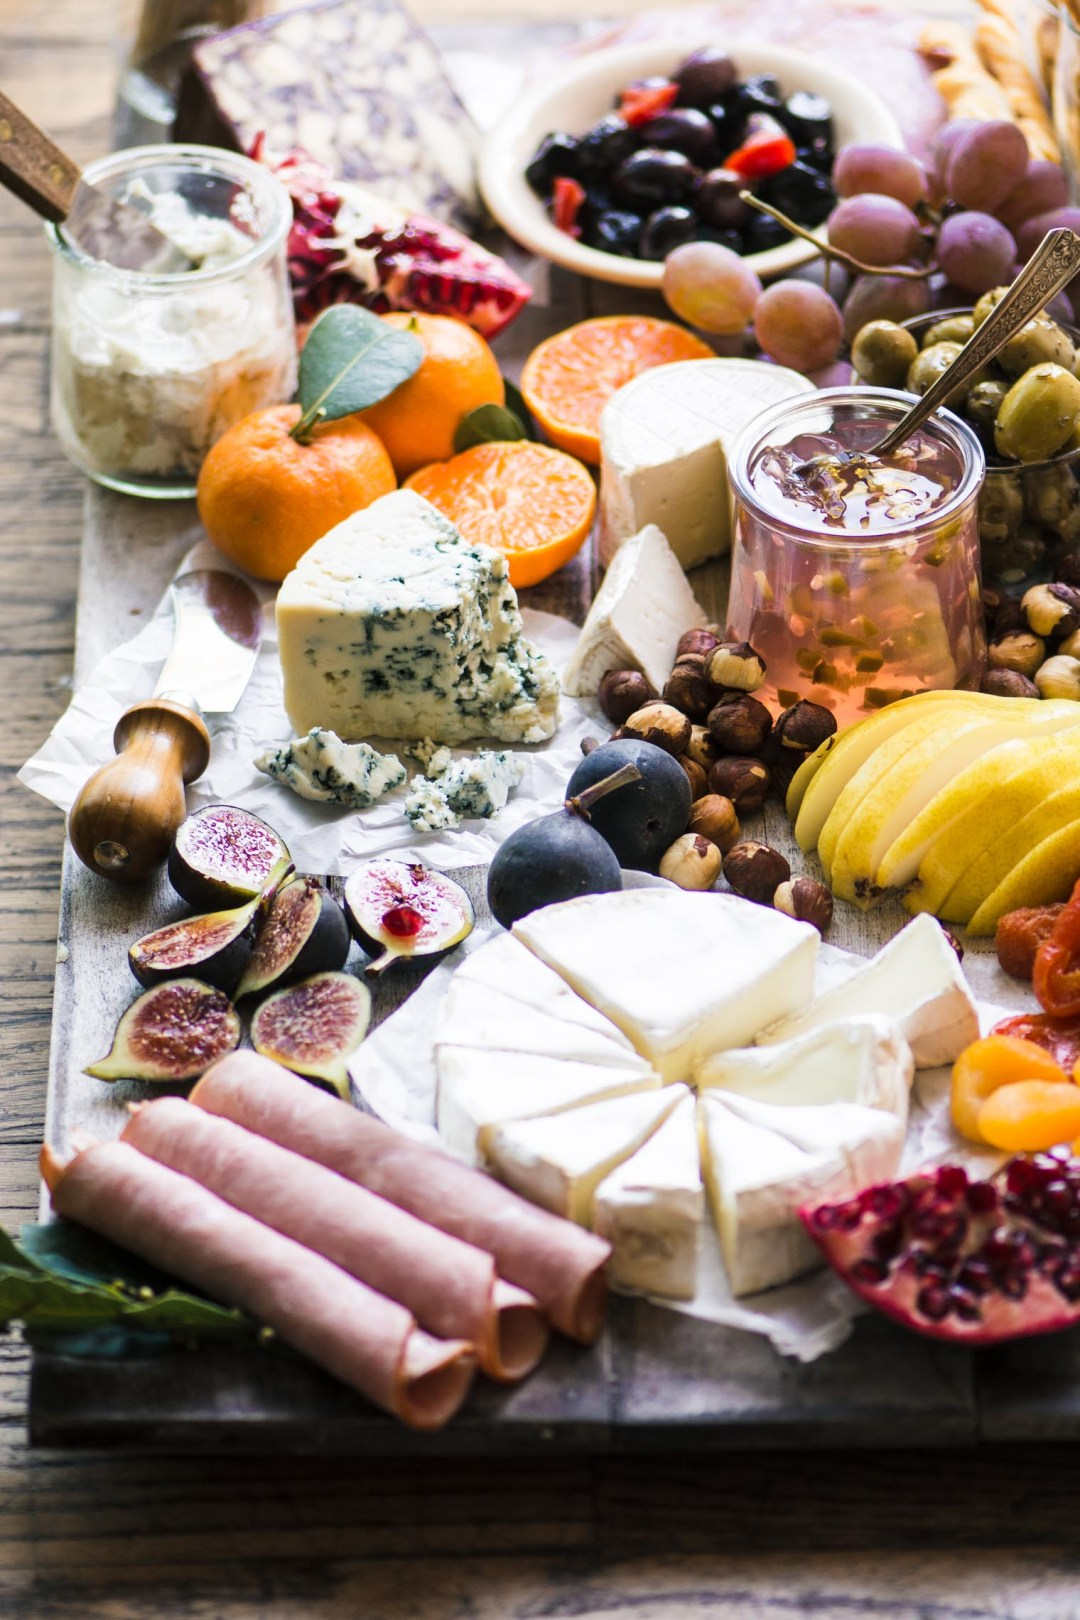 How to Make the Ultimate Cheeseboard!